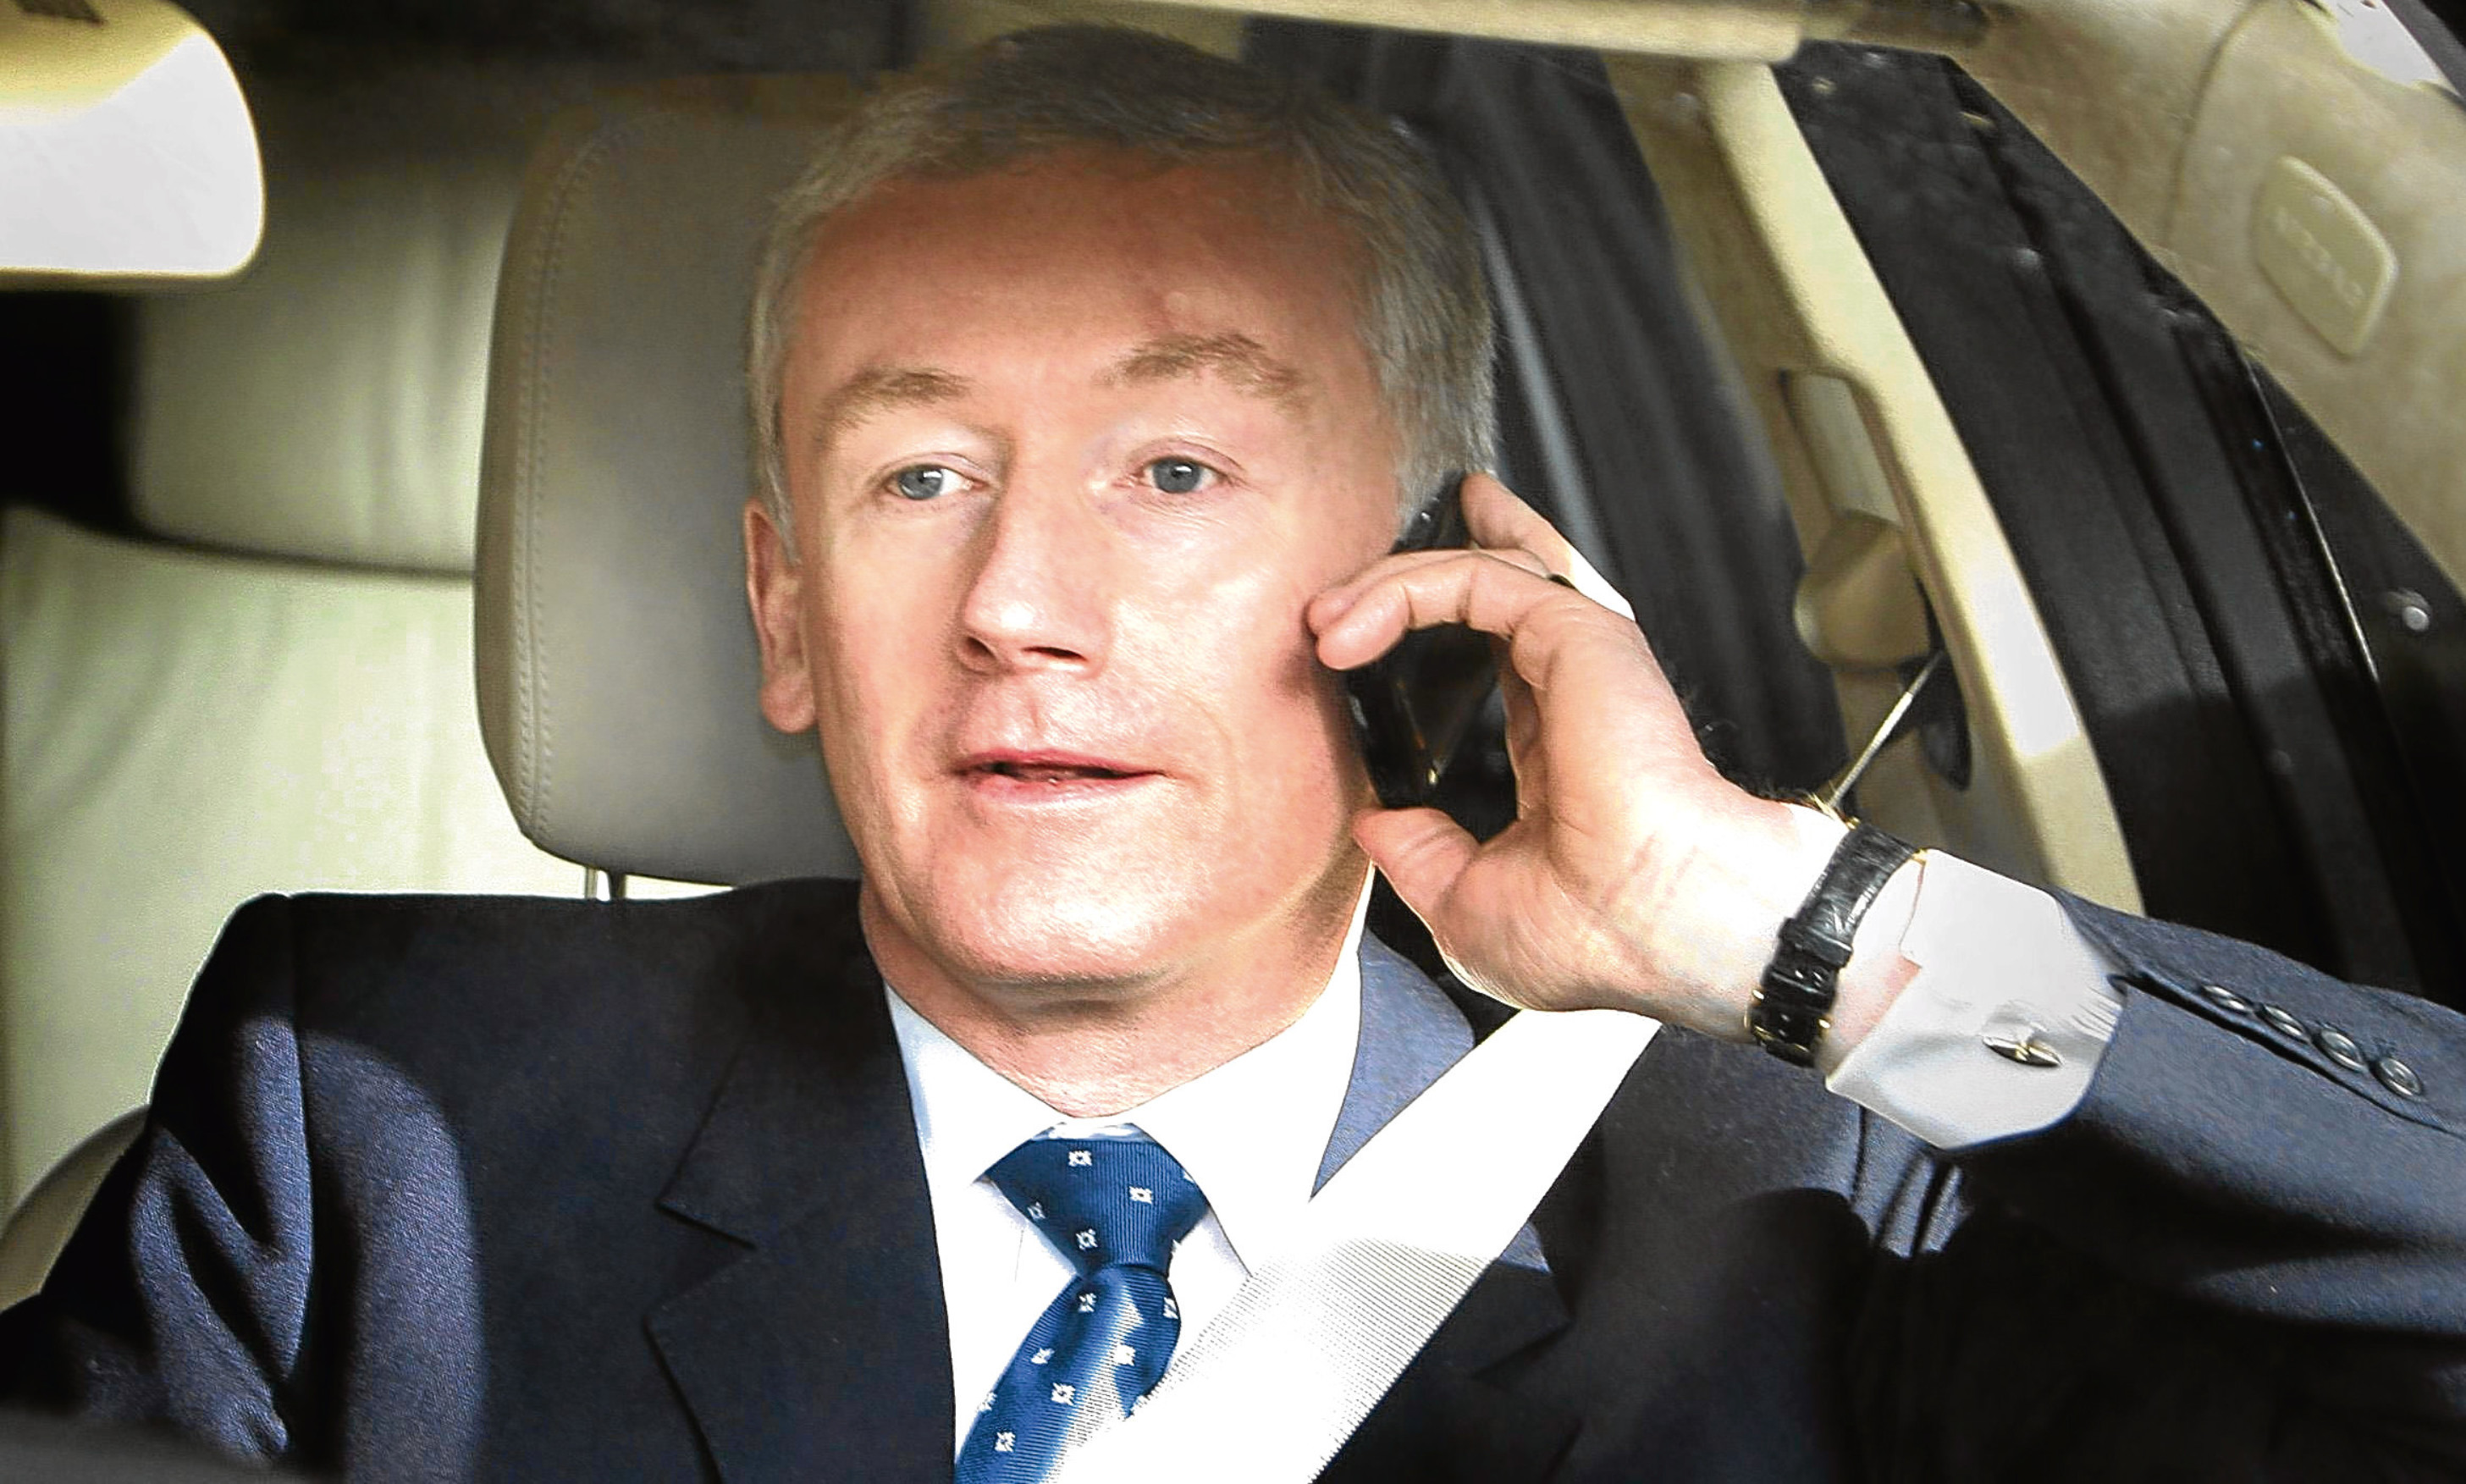 Fred Goodwin pictured in 2008 at the height of the crisis engulfing RBS.